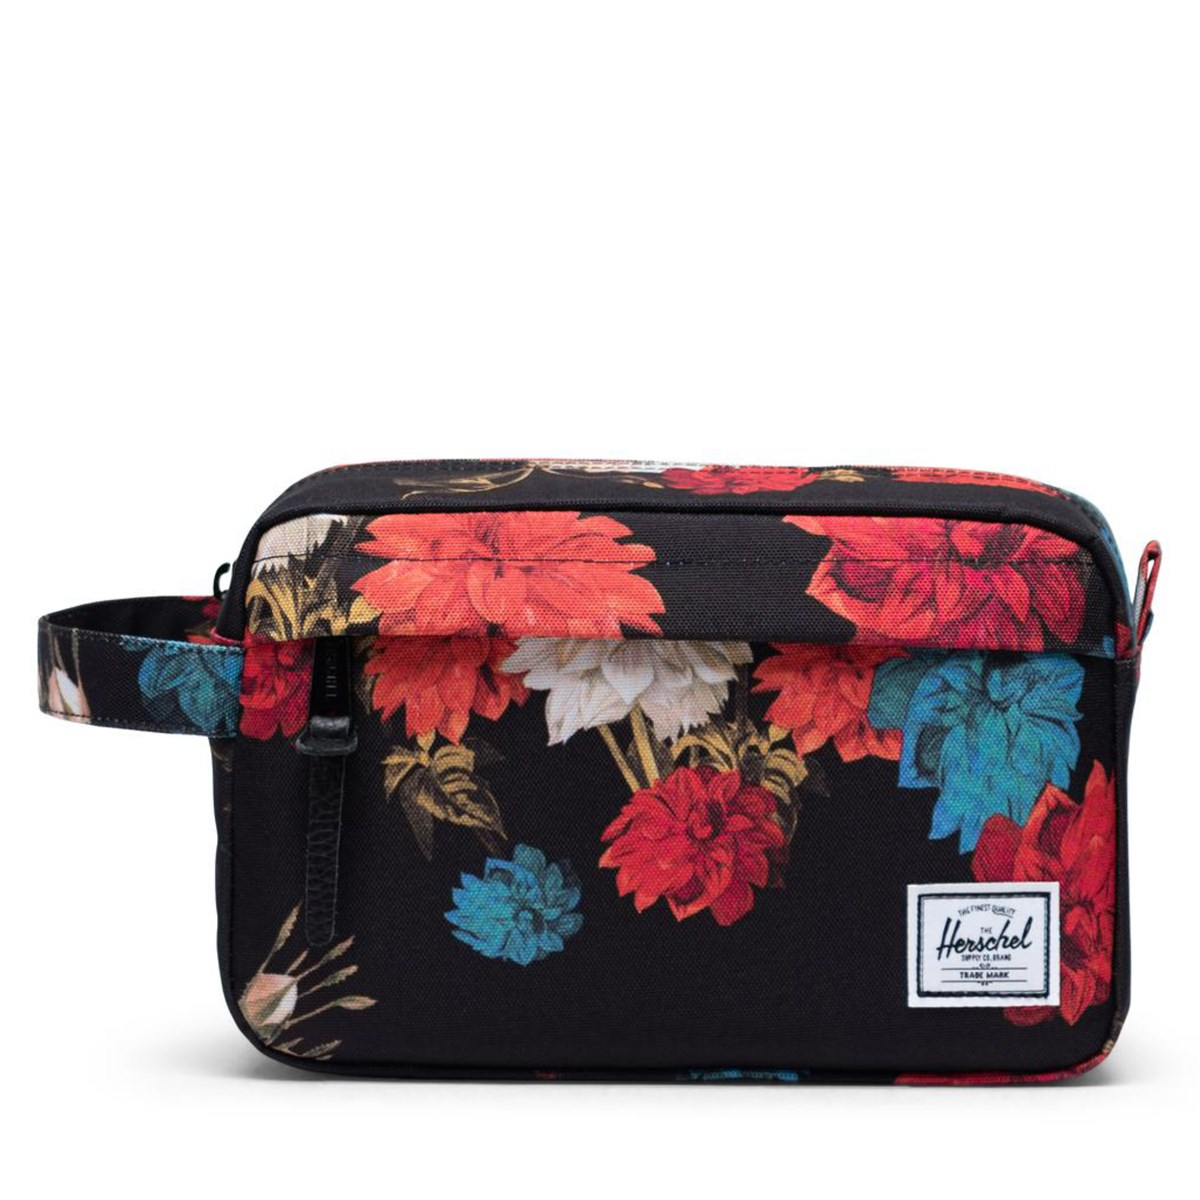 Chapter 5L Toiletry Bag in Vintage Floral